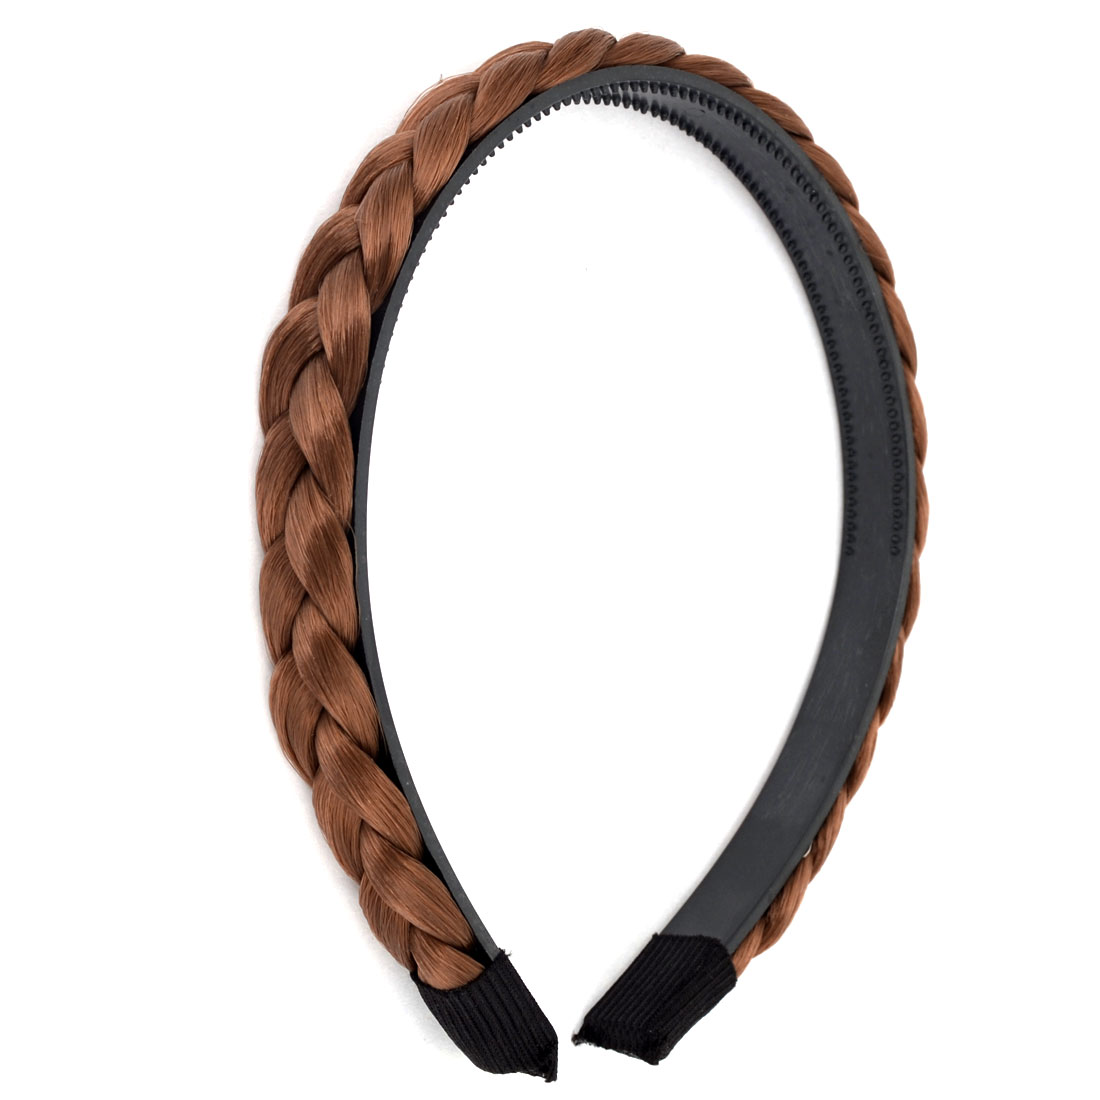 "Coffee Color Braided Wigs Hairpiece Adjustable Plastic 0.6"" Width Band Hair Hoop Headband for Women"